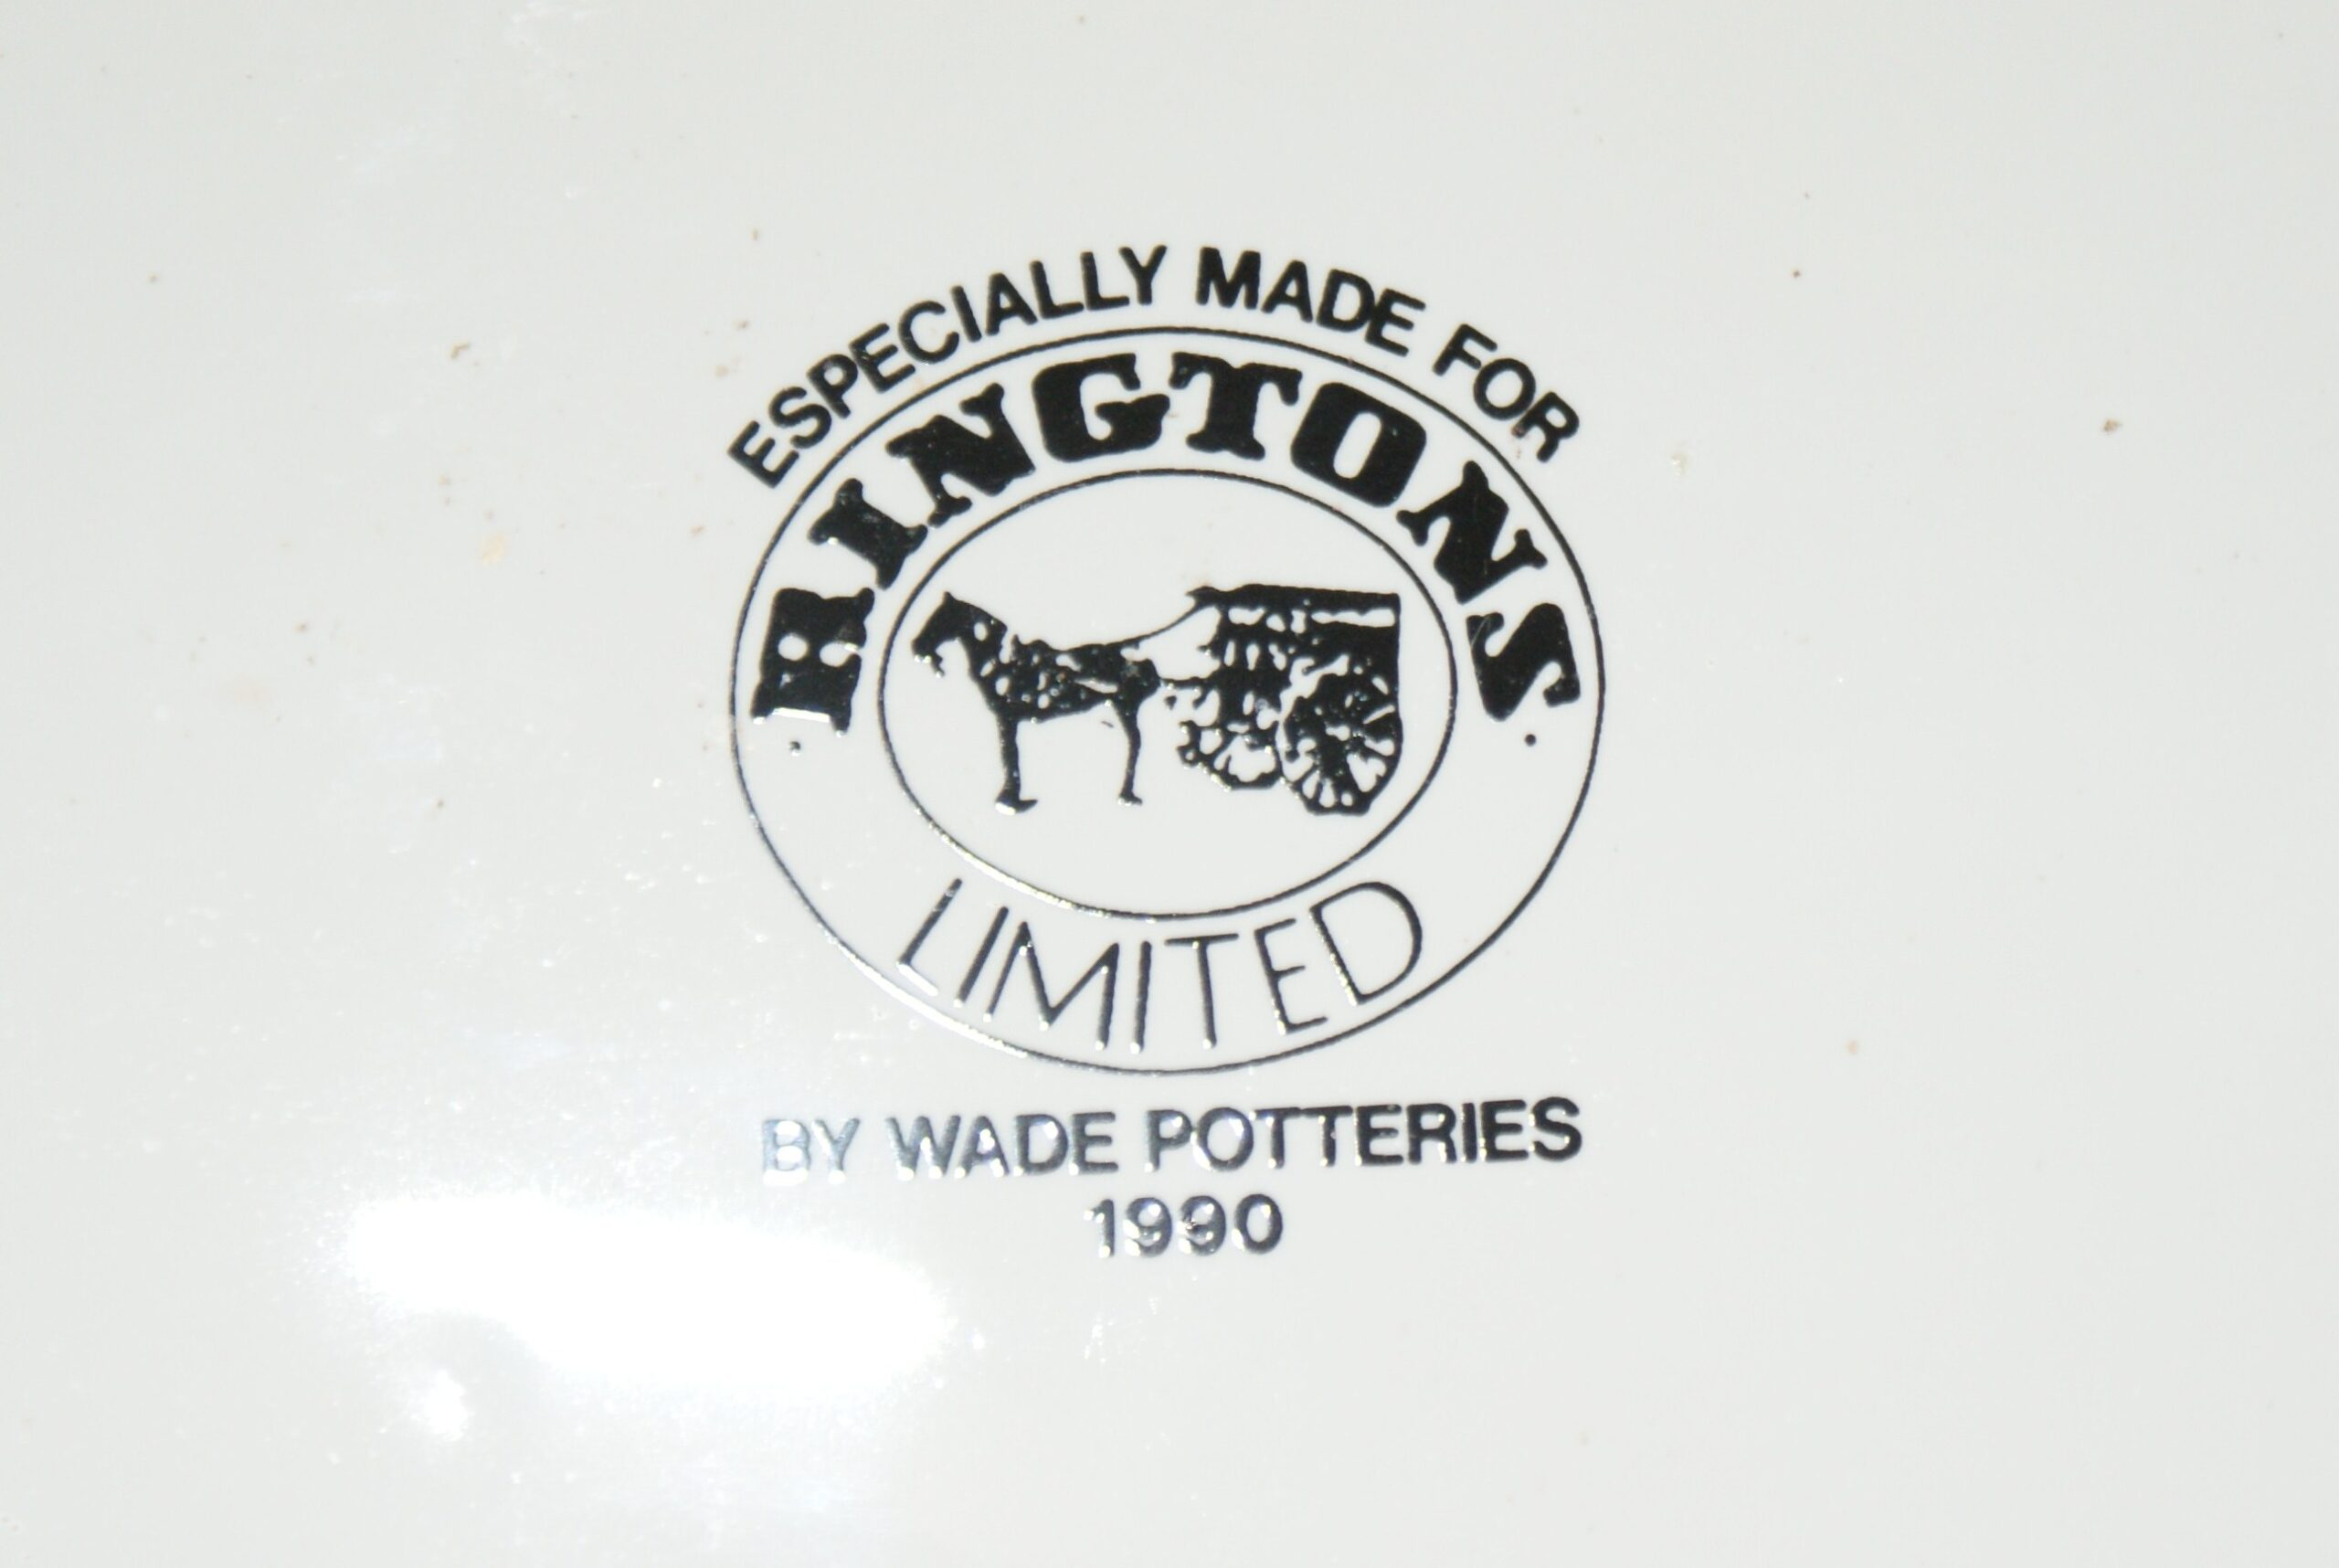 Ringtons Ltd and Wade